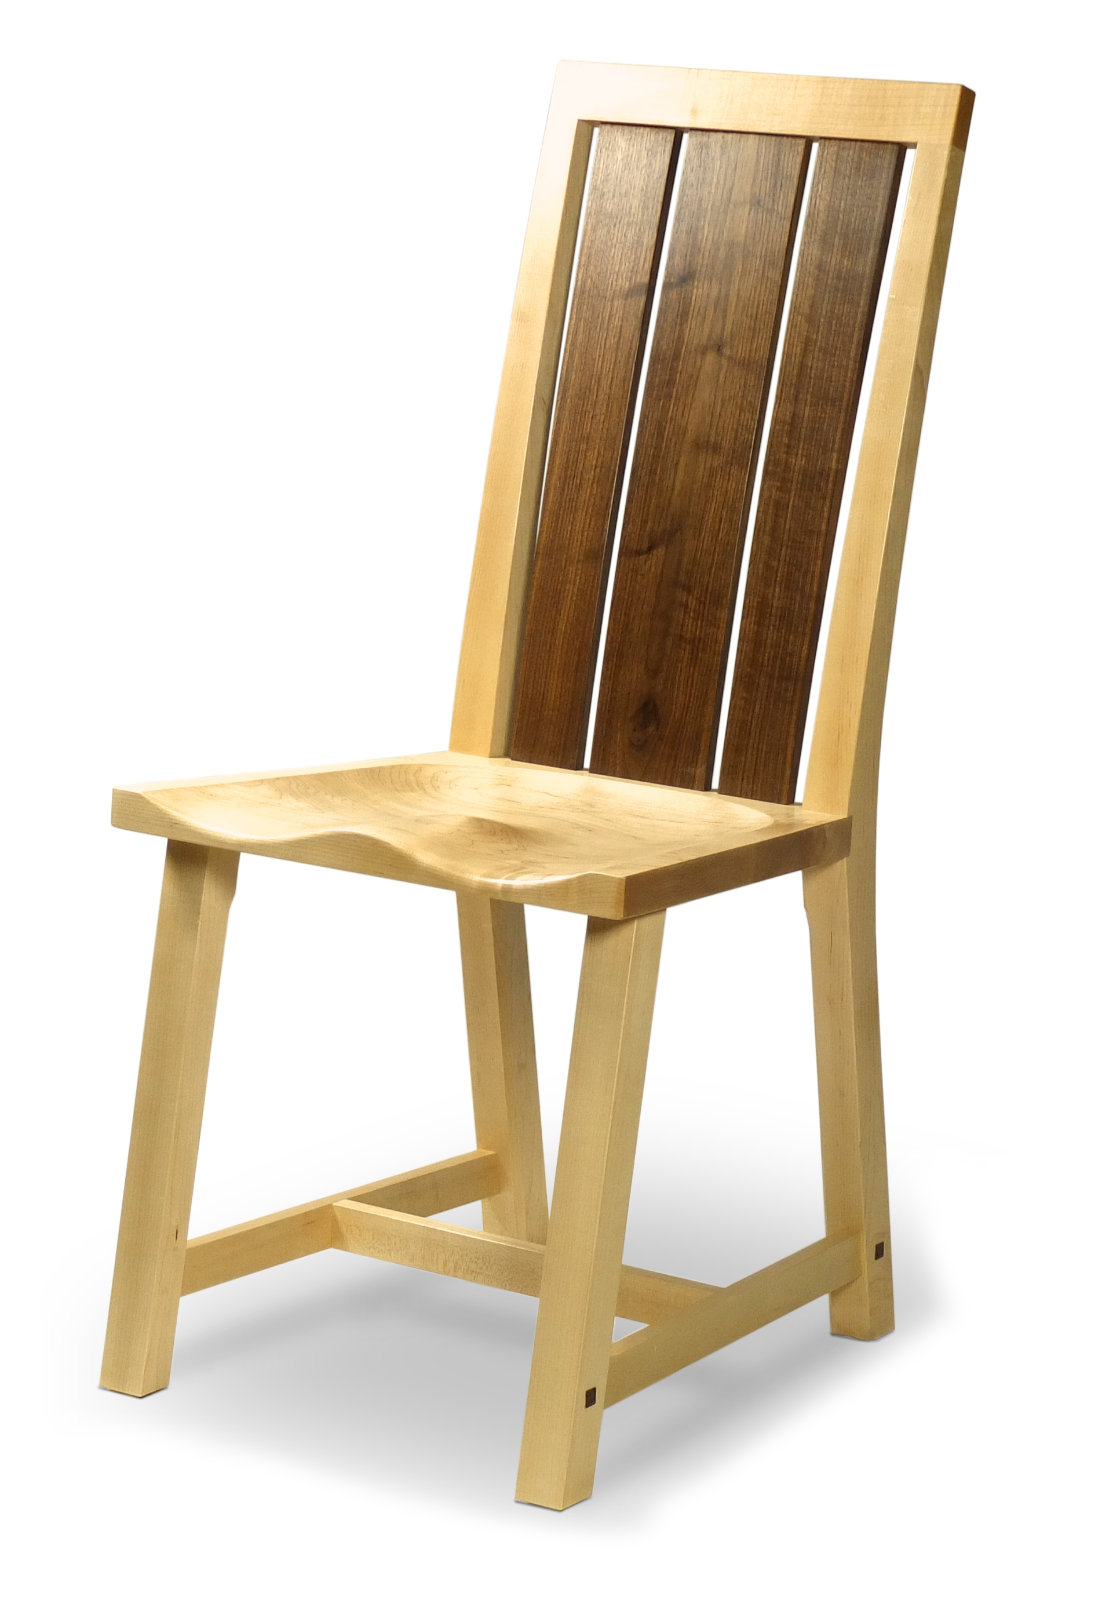 lakeviewchair1.jpg